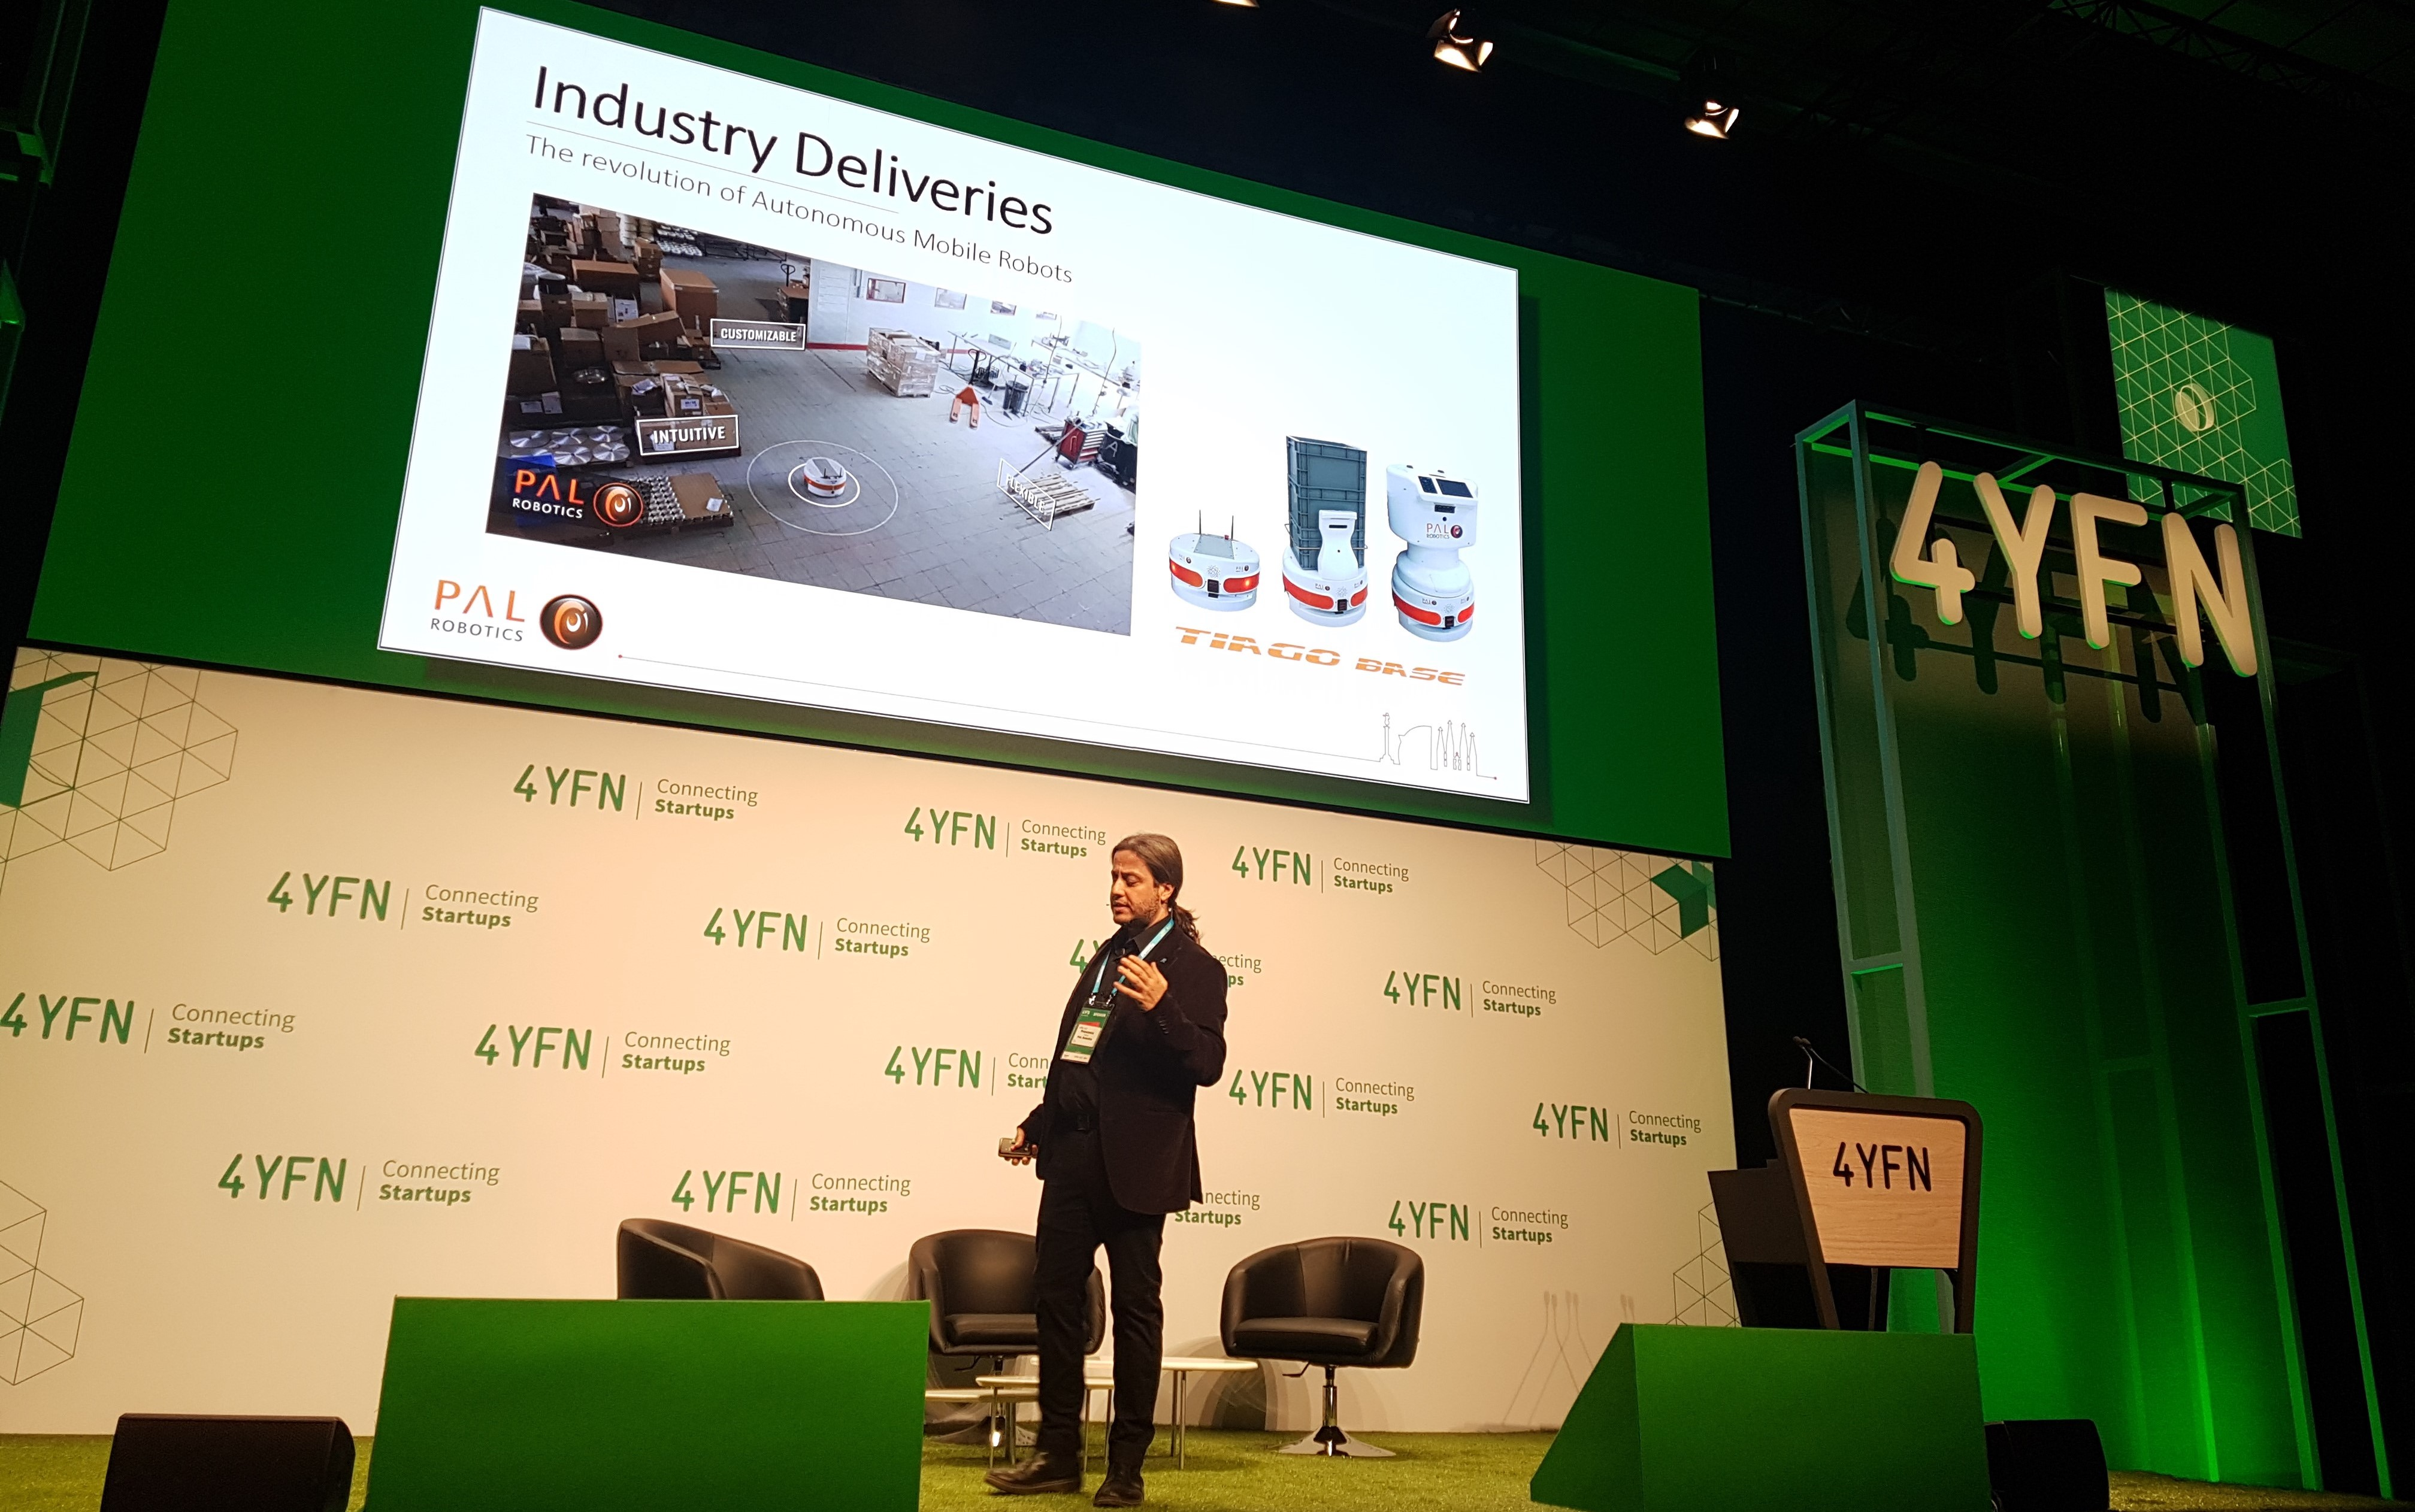 3-Industry-courier-amr-mwc-4yfn